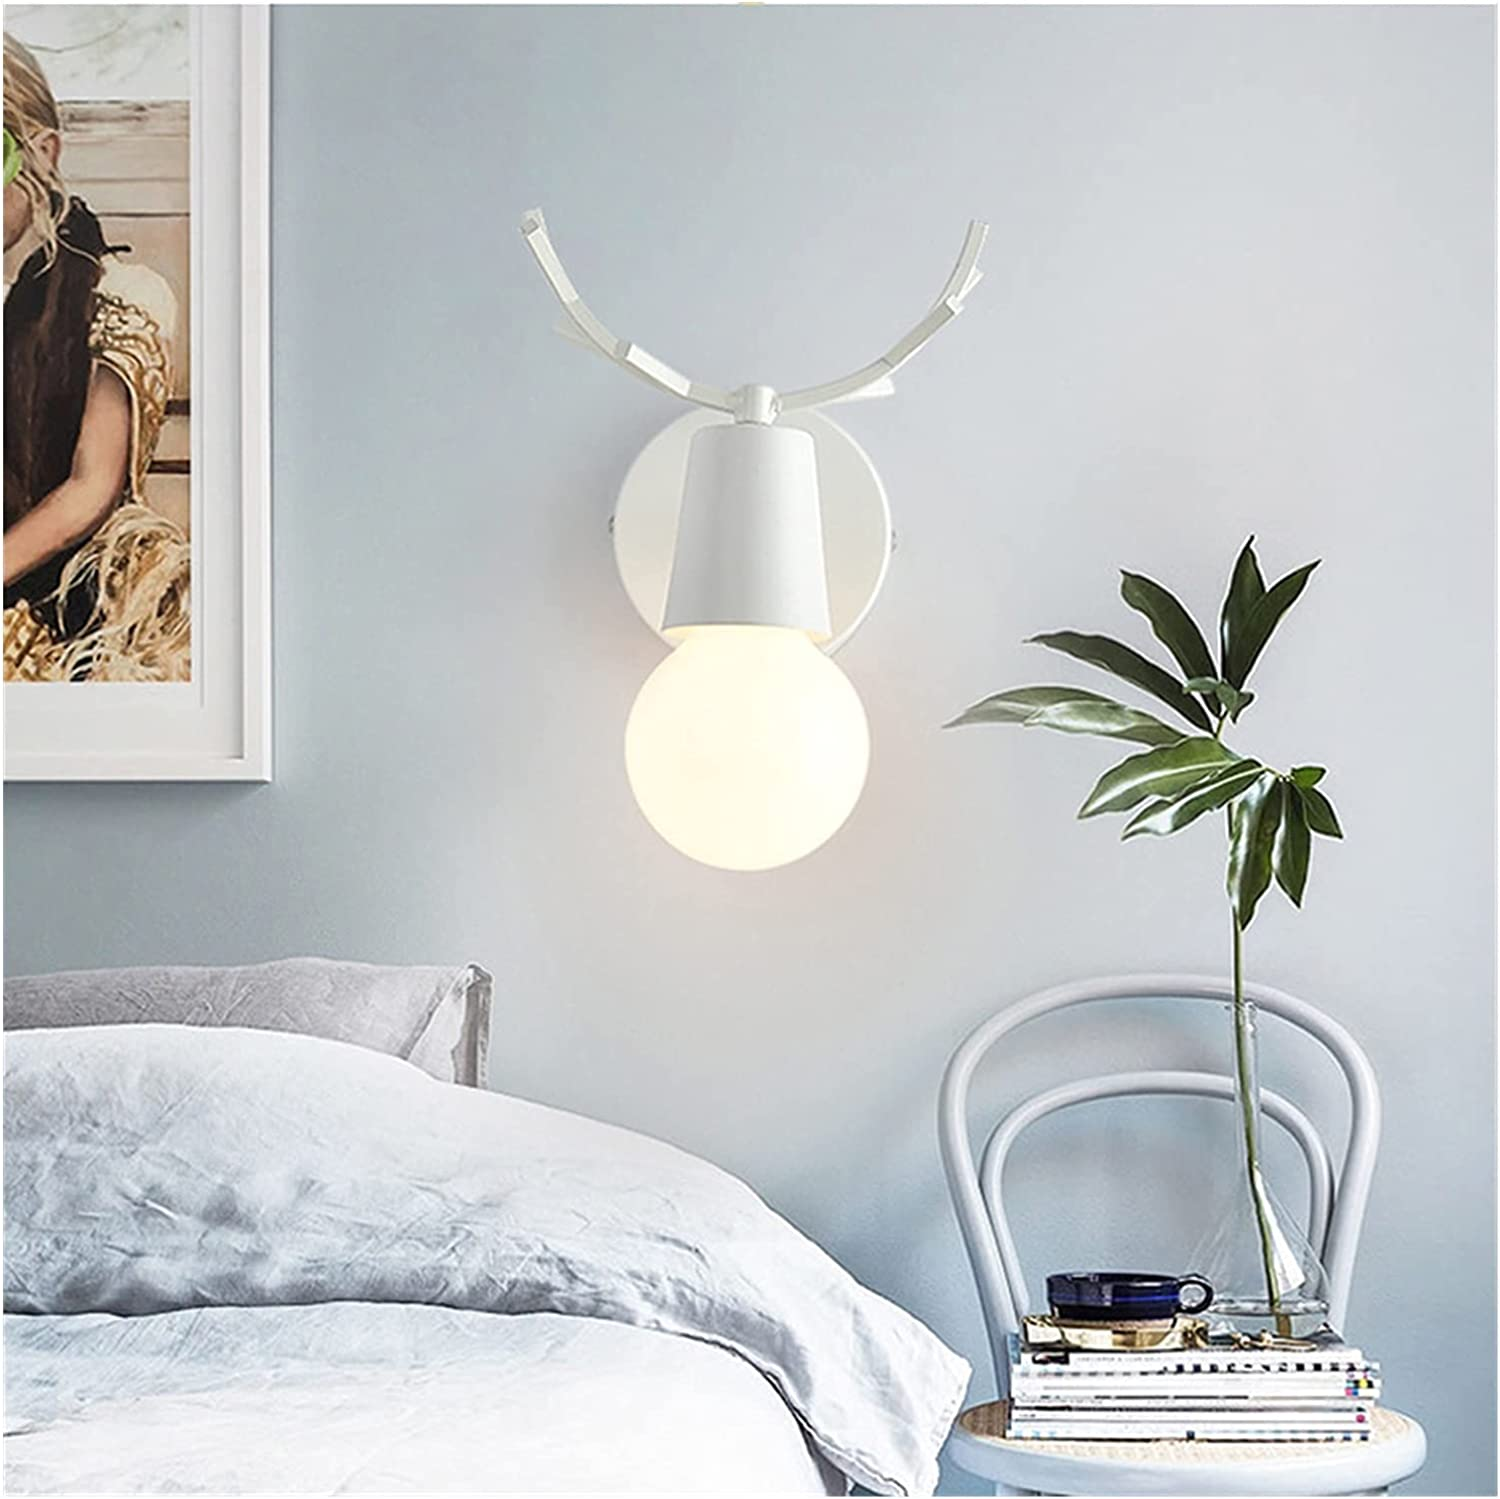 OIR724 Nordic Modern Wood Genuine Antler Beauty products Creative Lamp Personality